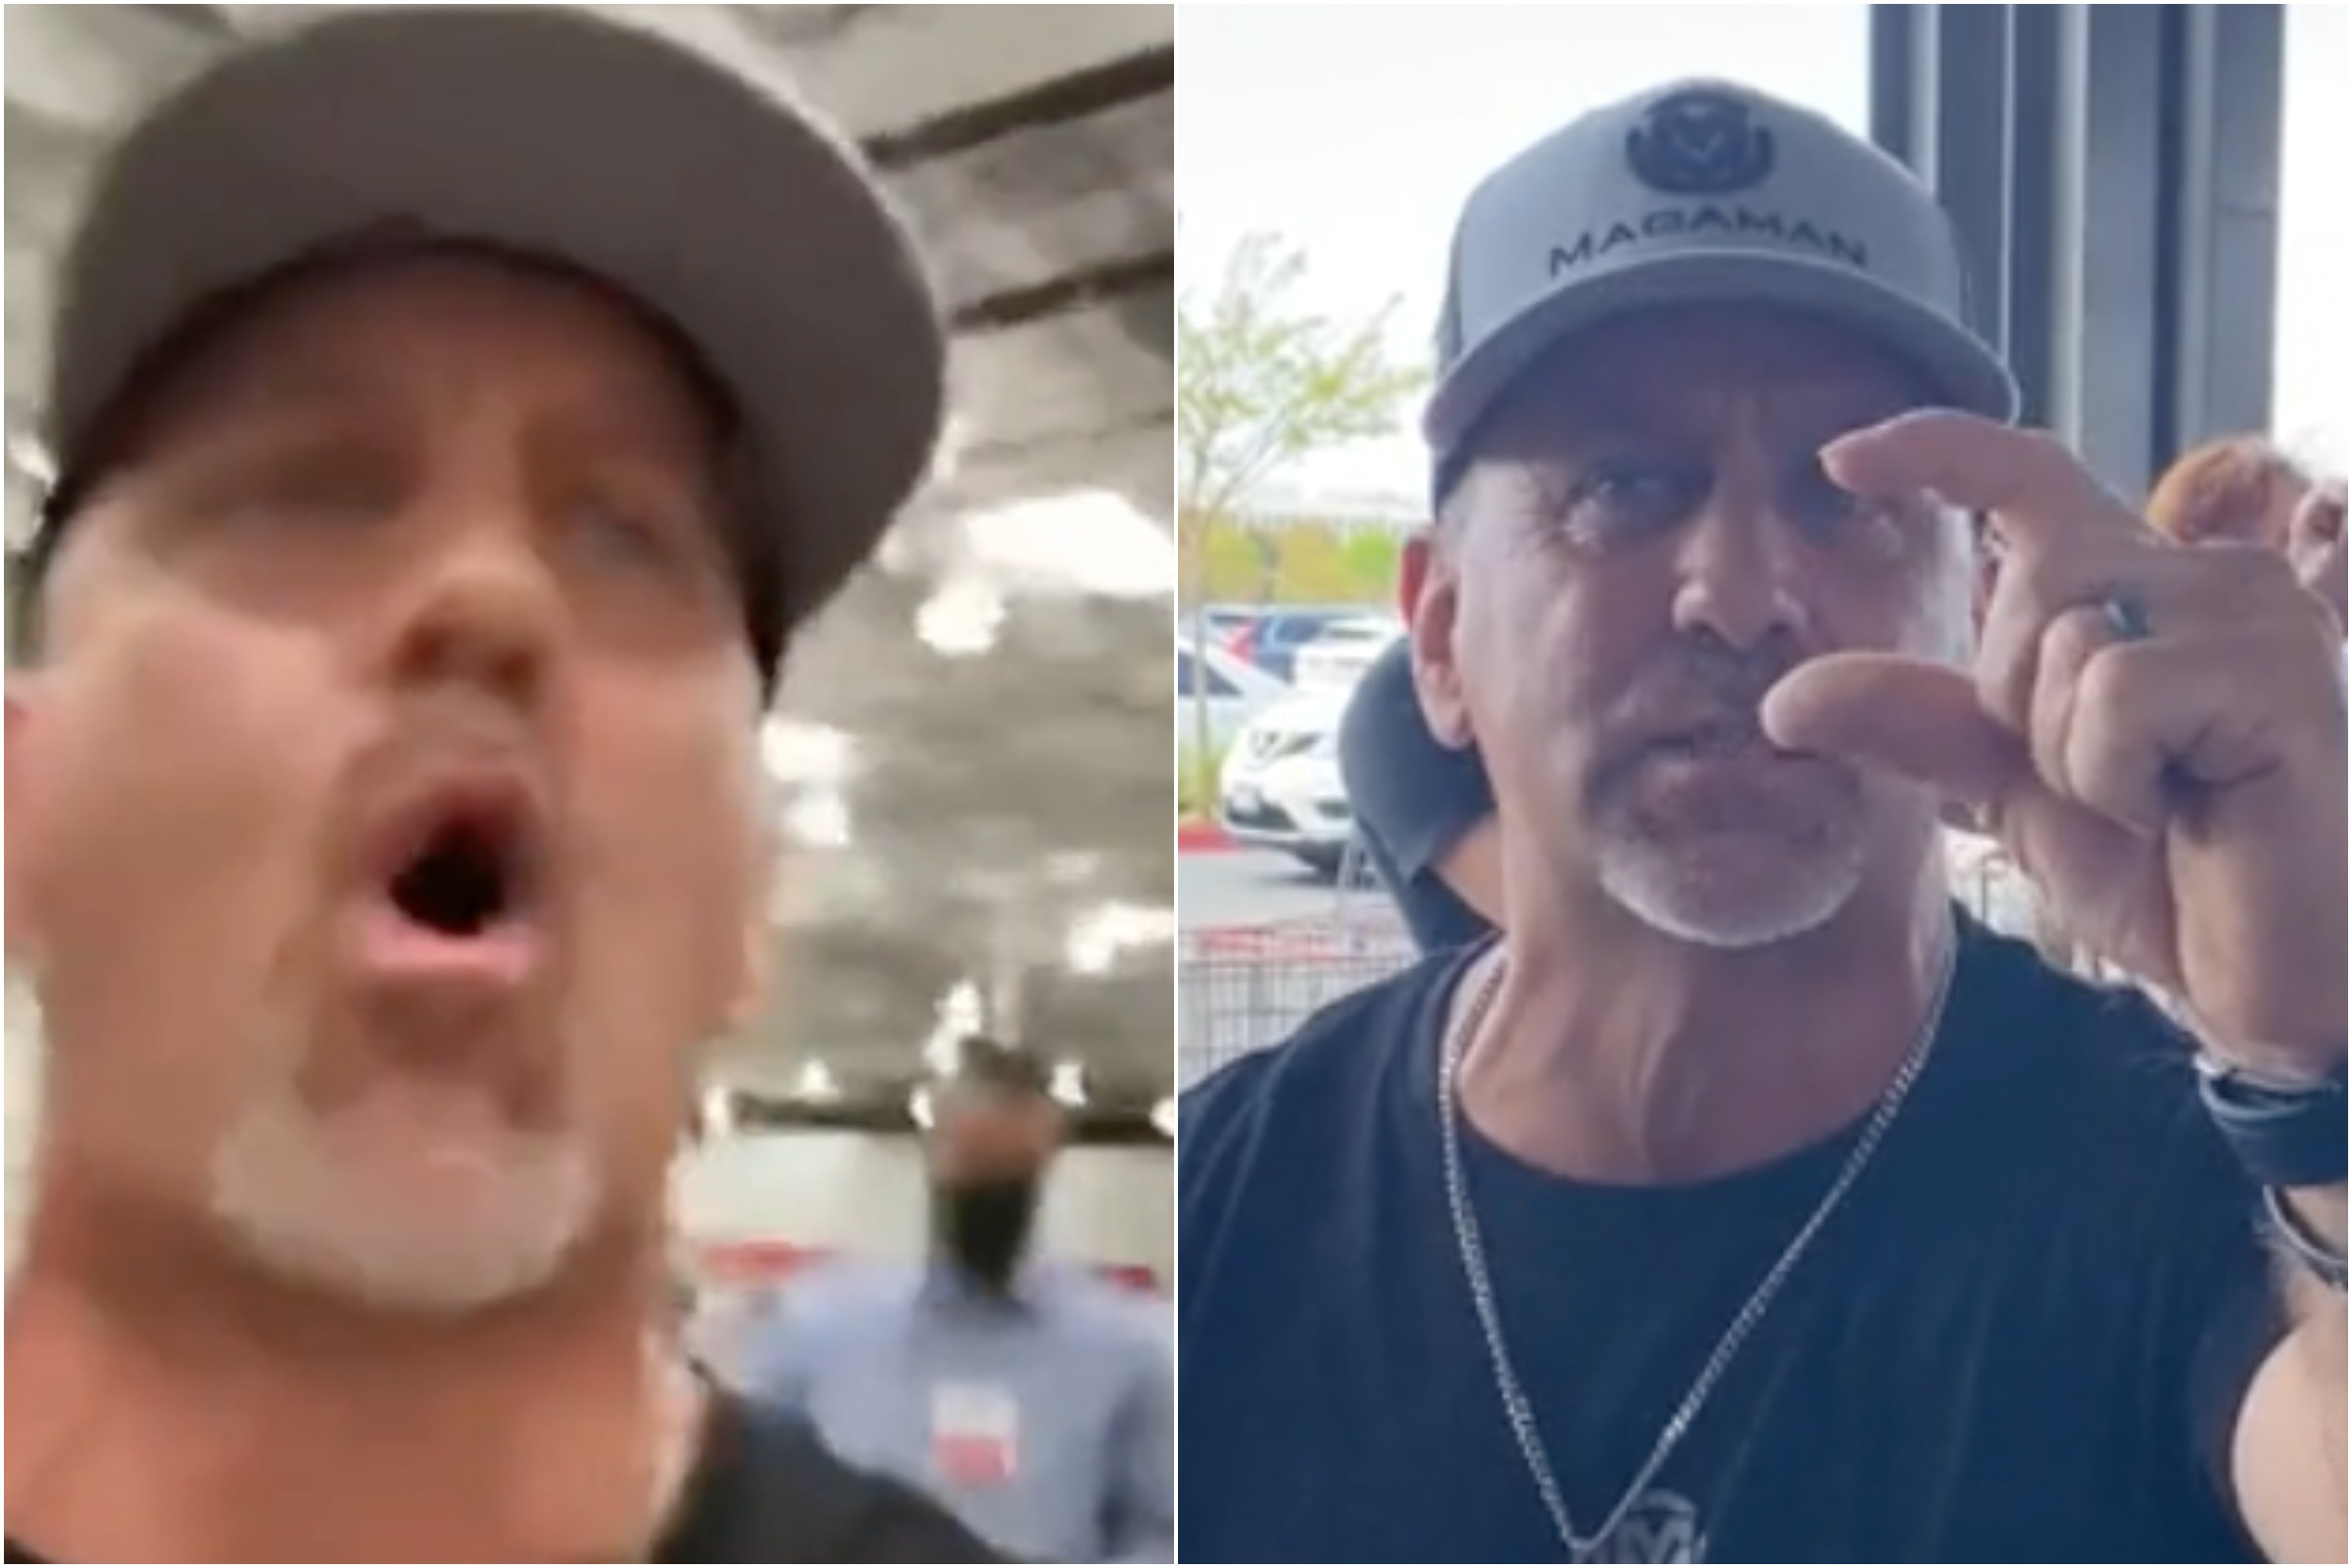 'Where's The Men At?': Anti-Masker Goes Viral for One-Man Protest in Costco